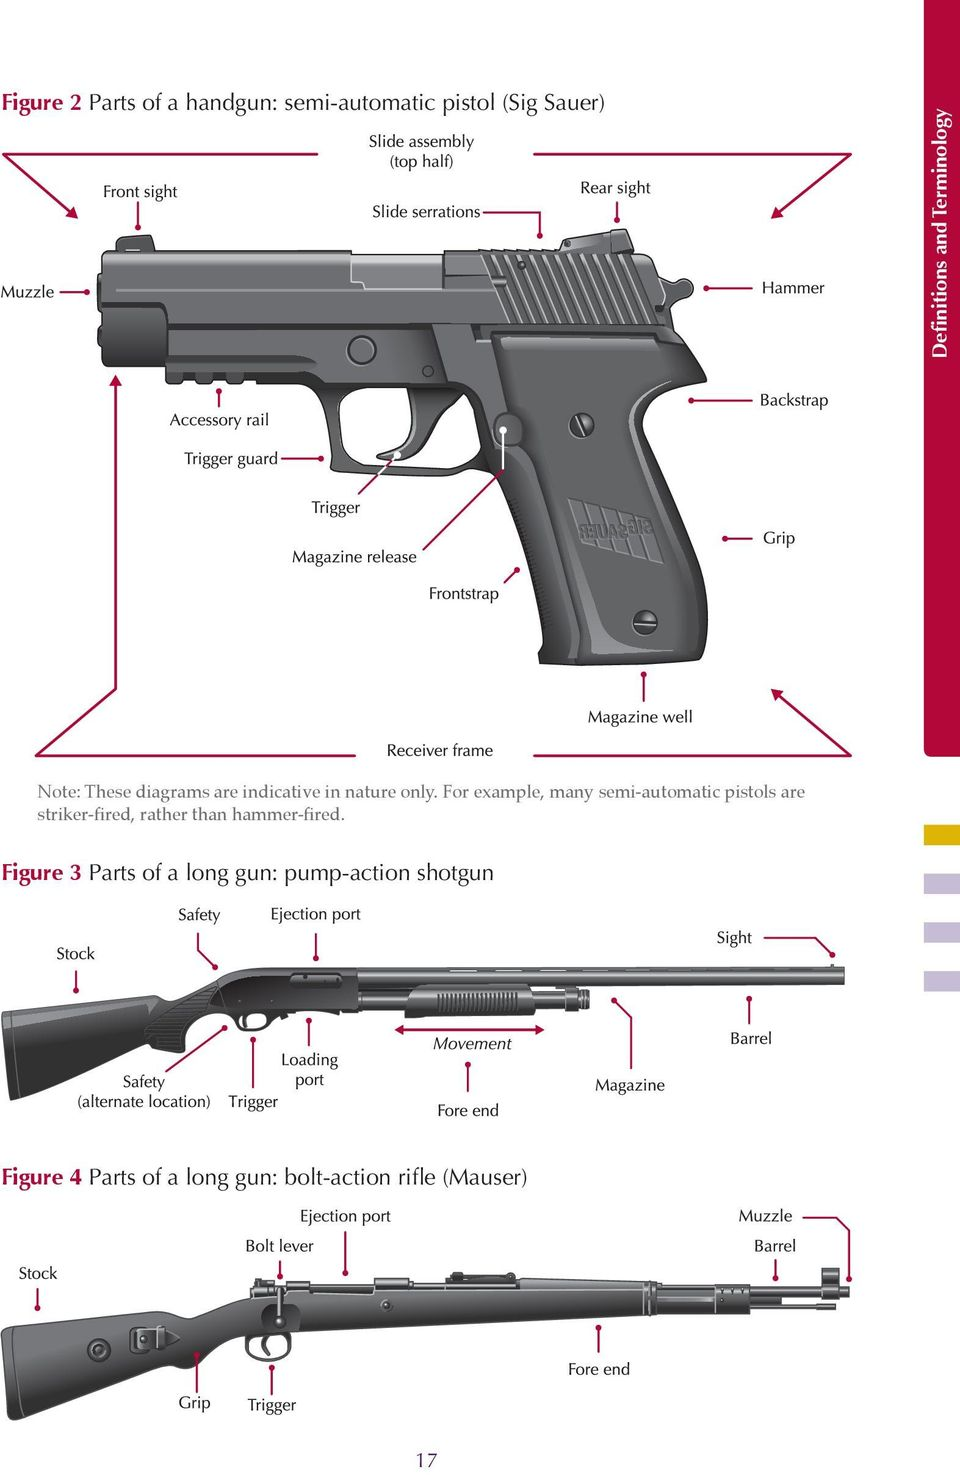 For example, many semi-automatic pistols are striker-fired, rather than hammer-fired.